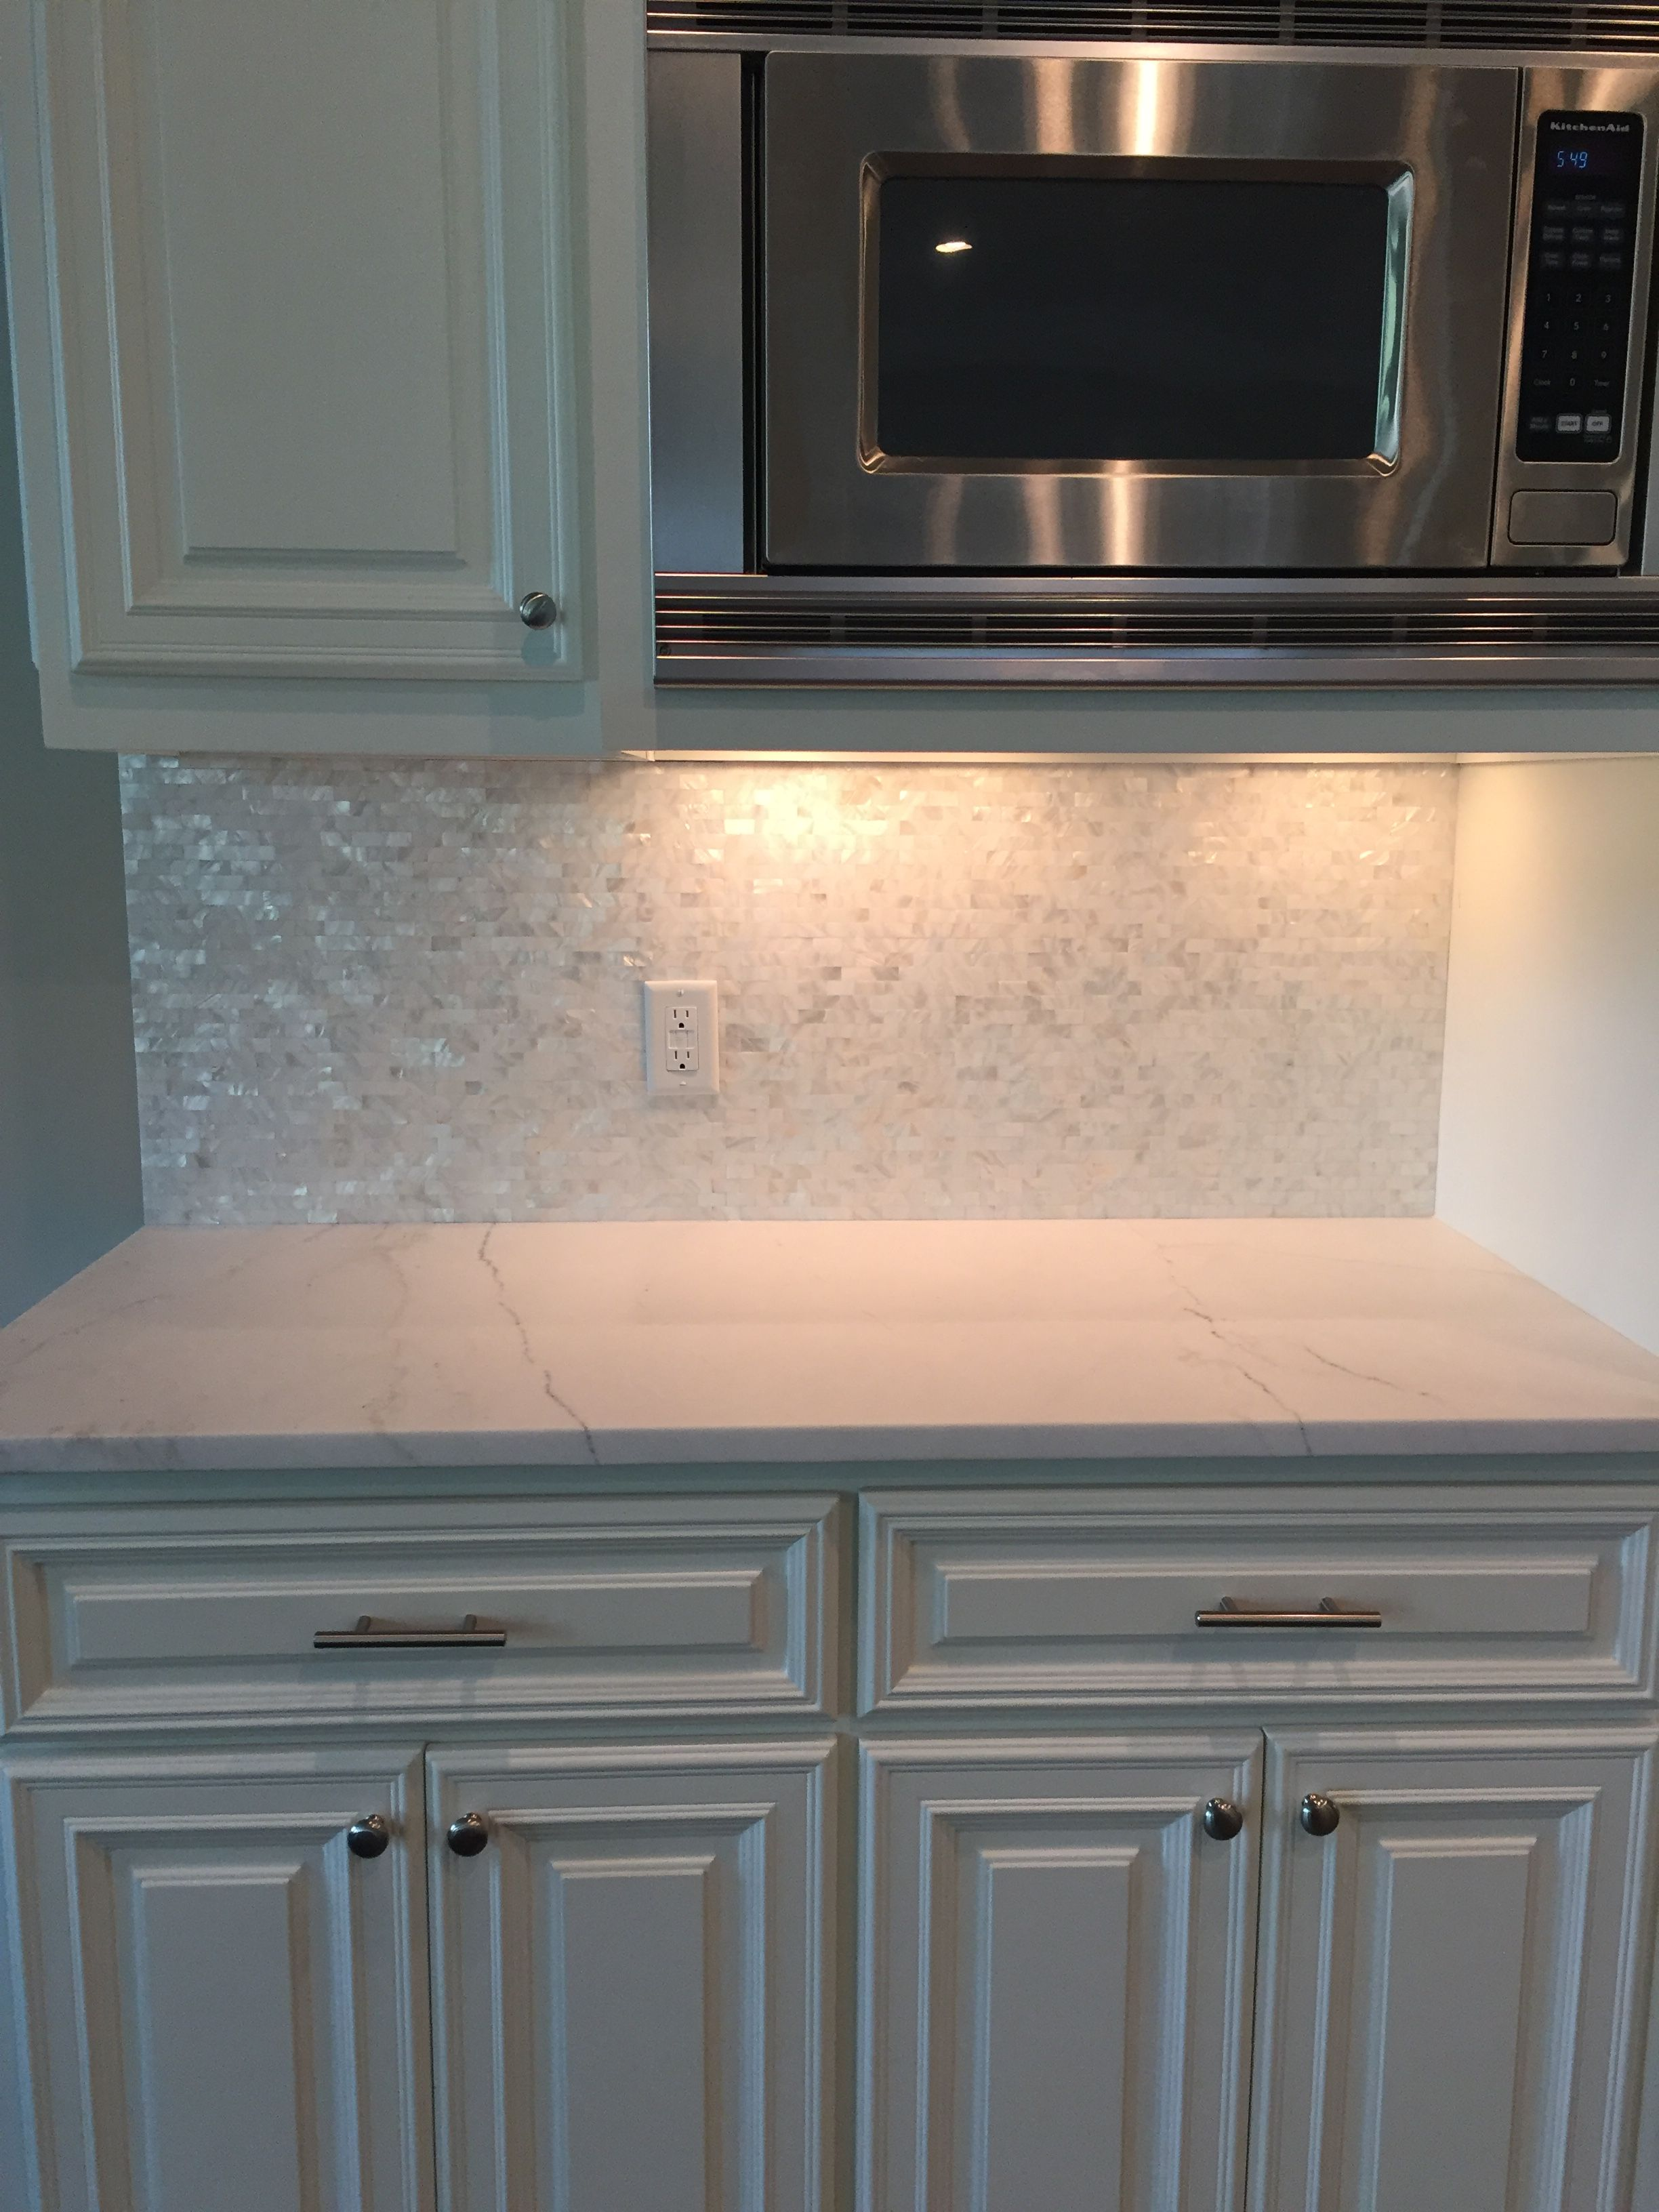 Amazing White Brick Pearl S Tile backsplash. https://www ... on kitchen backsplashes with brick, kitchen islands with brick, cherry kitchen cabinets with brick, black kitchen cabinets with brick, kitchen design ideas with brick, kitchen remodel, tuscan kitchen design with brick, kitchen tile, kitchen backsplash with red brick, kitchen layouts with brick, kitchen brick wall, kitchen designs for small kitchens with window, concrete patio design ideas with brick, kitchen countertops, kitchen remodeling ideas, kitchen colors with natural hickory cabinets, exterior house color ideas with brick, kitchen cabinet color with yellow walls, kitchen design ideas with cream cabinets, old world rustic kitchen with brick,